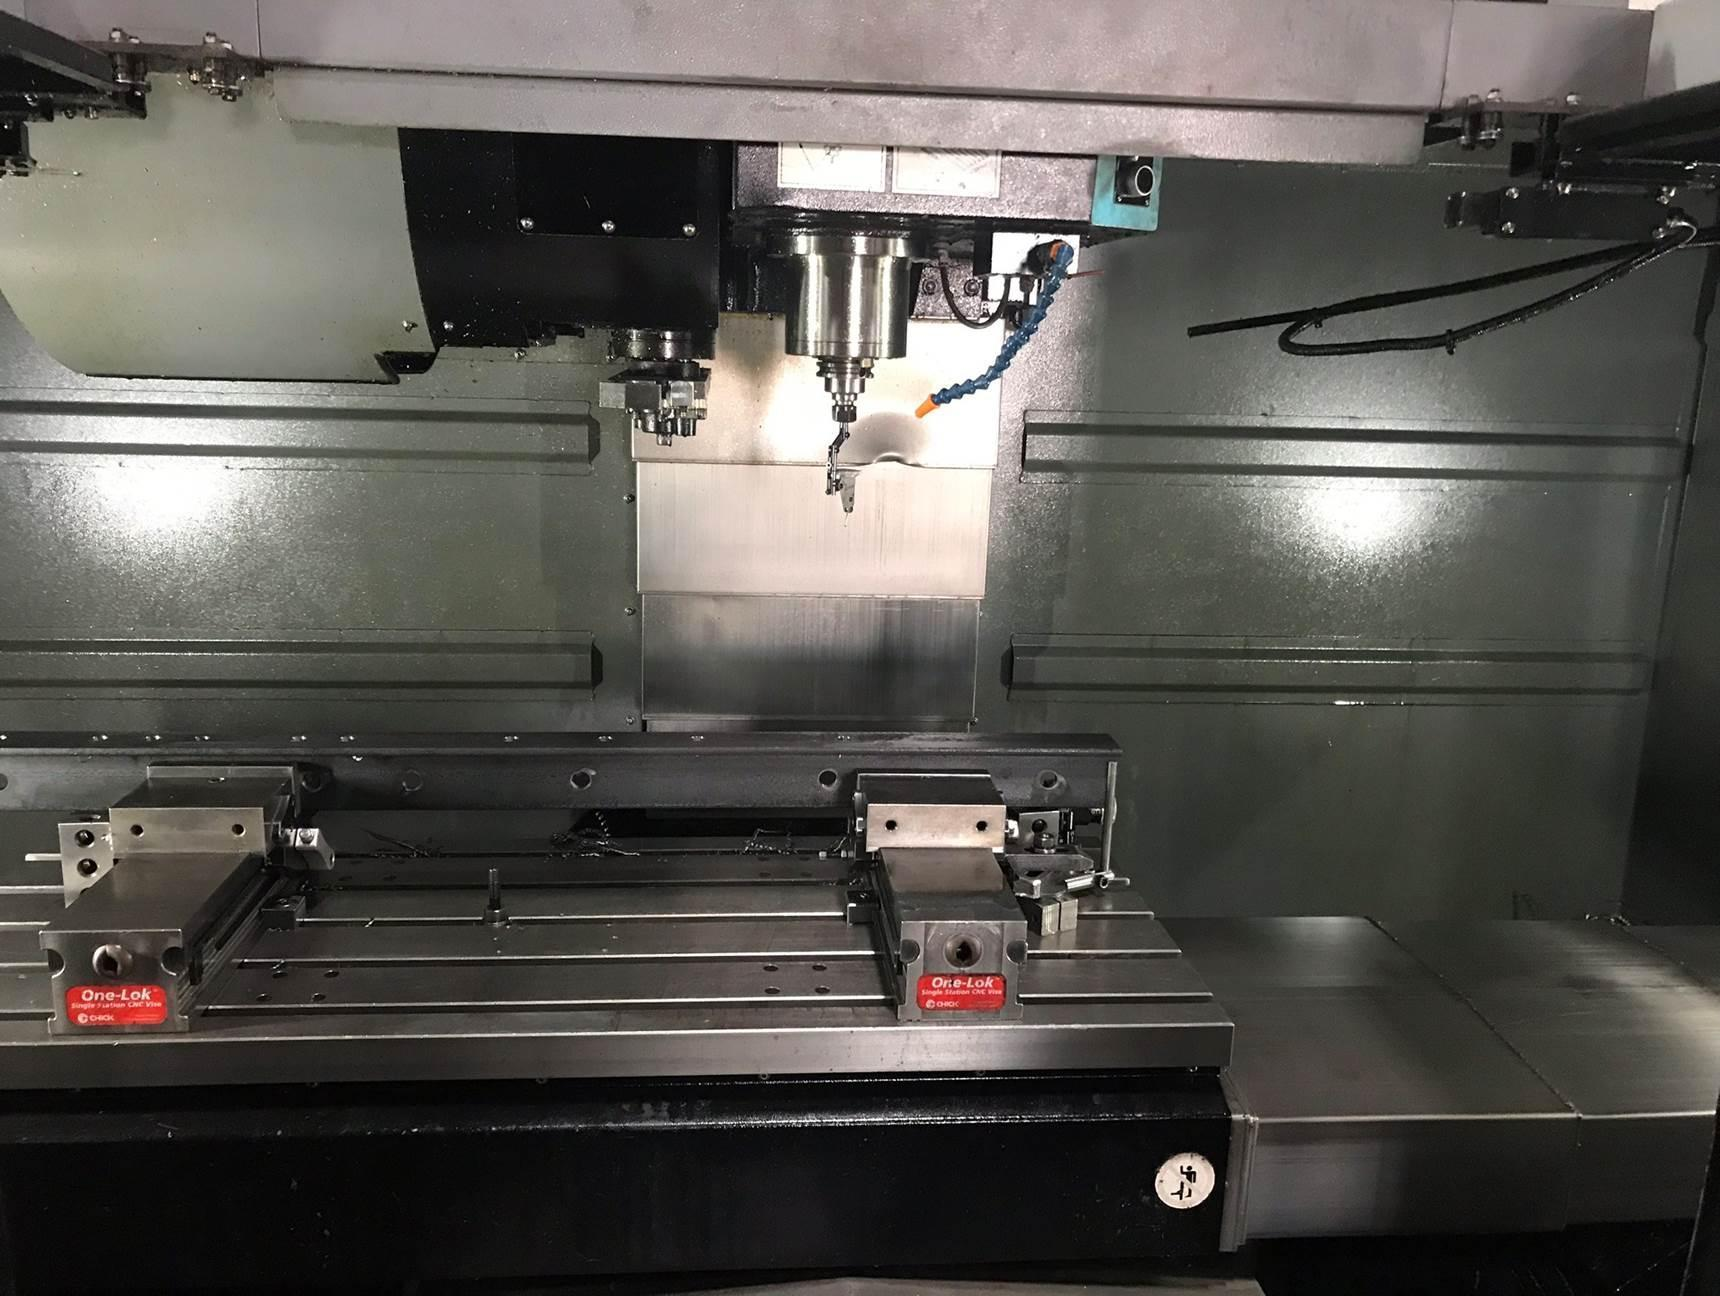 USED HURCO 3 AXIS VERTICAL CNC MACHINING CENTER MODEL VM30i, STOCK# 10655, YEAR 2015